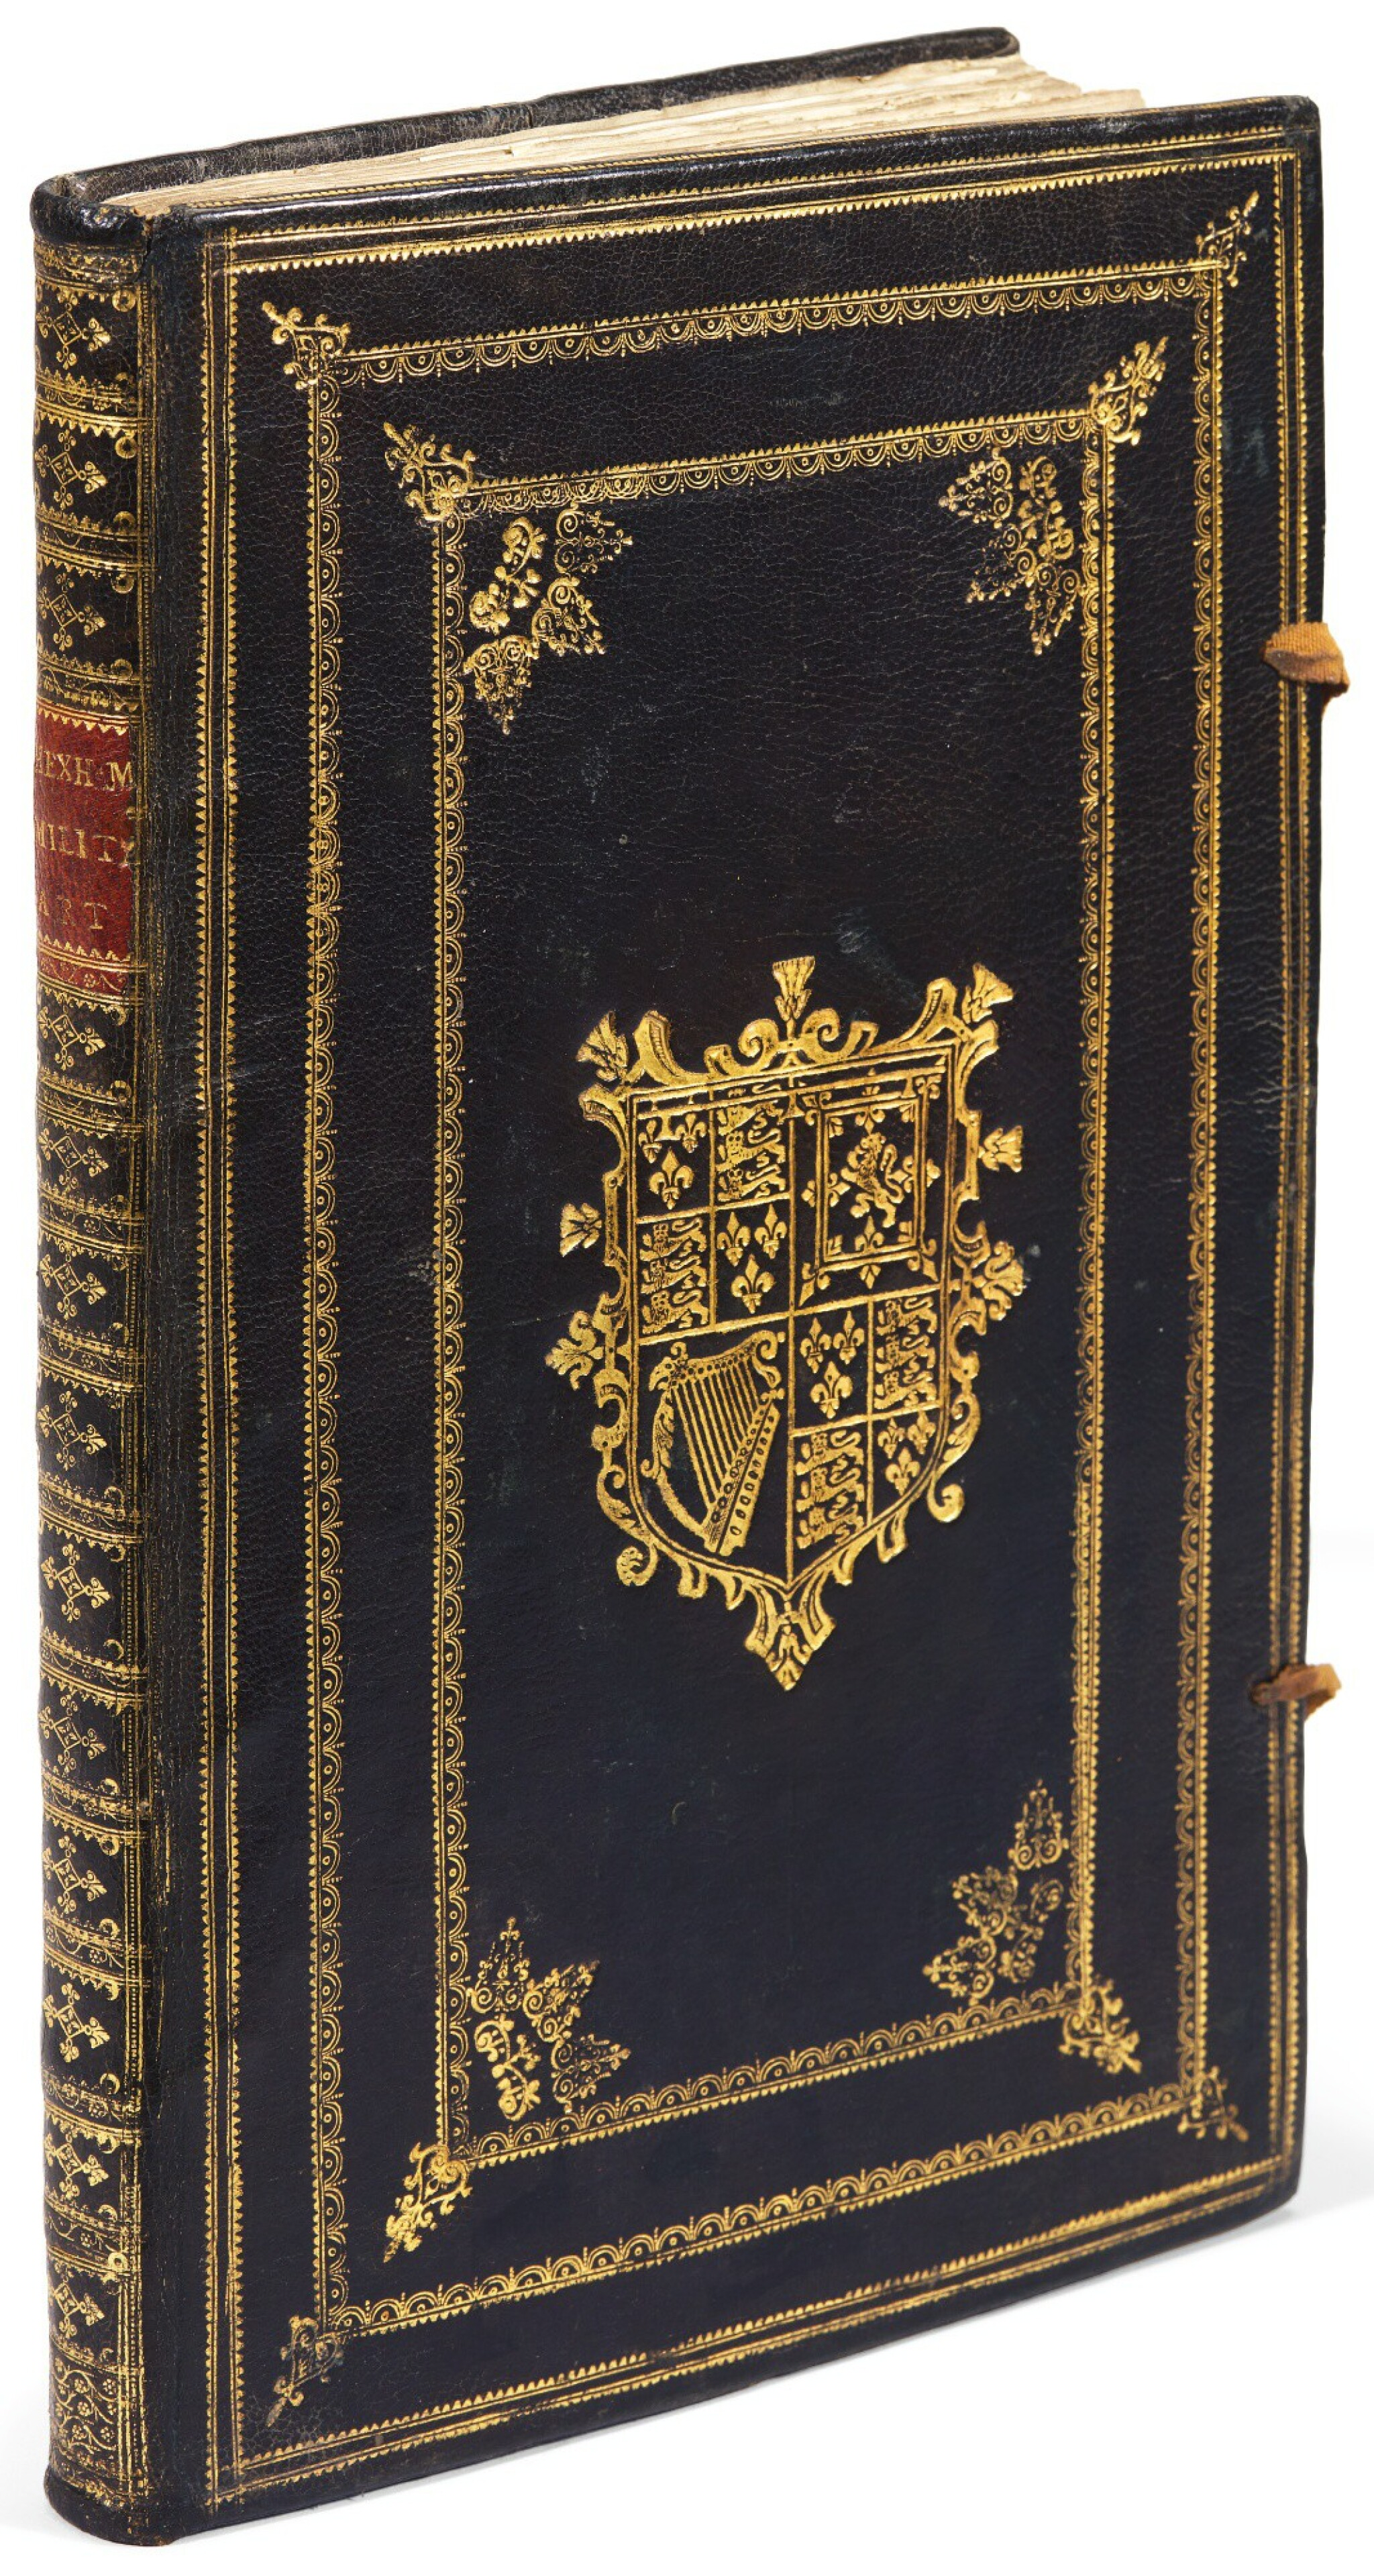 View full screen - View 1 of Lot 242. Hexham, Principles of the art militarie, London, 1637, black morocco gilt, presentation copy to Charles II.